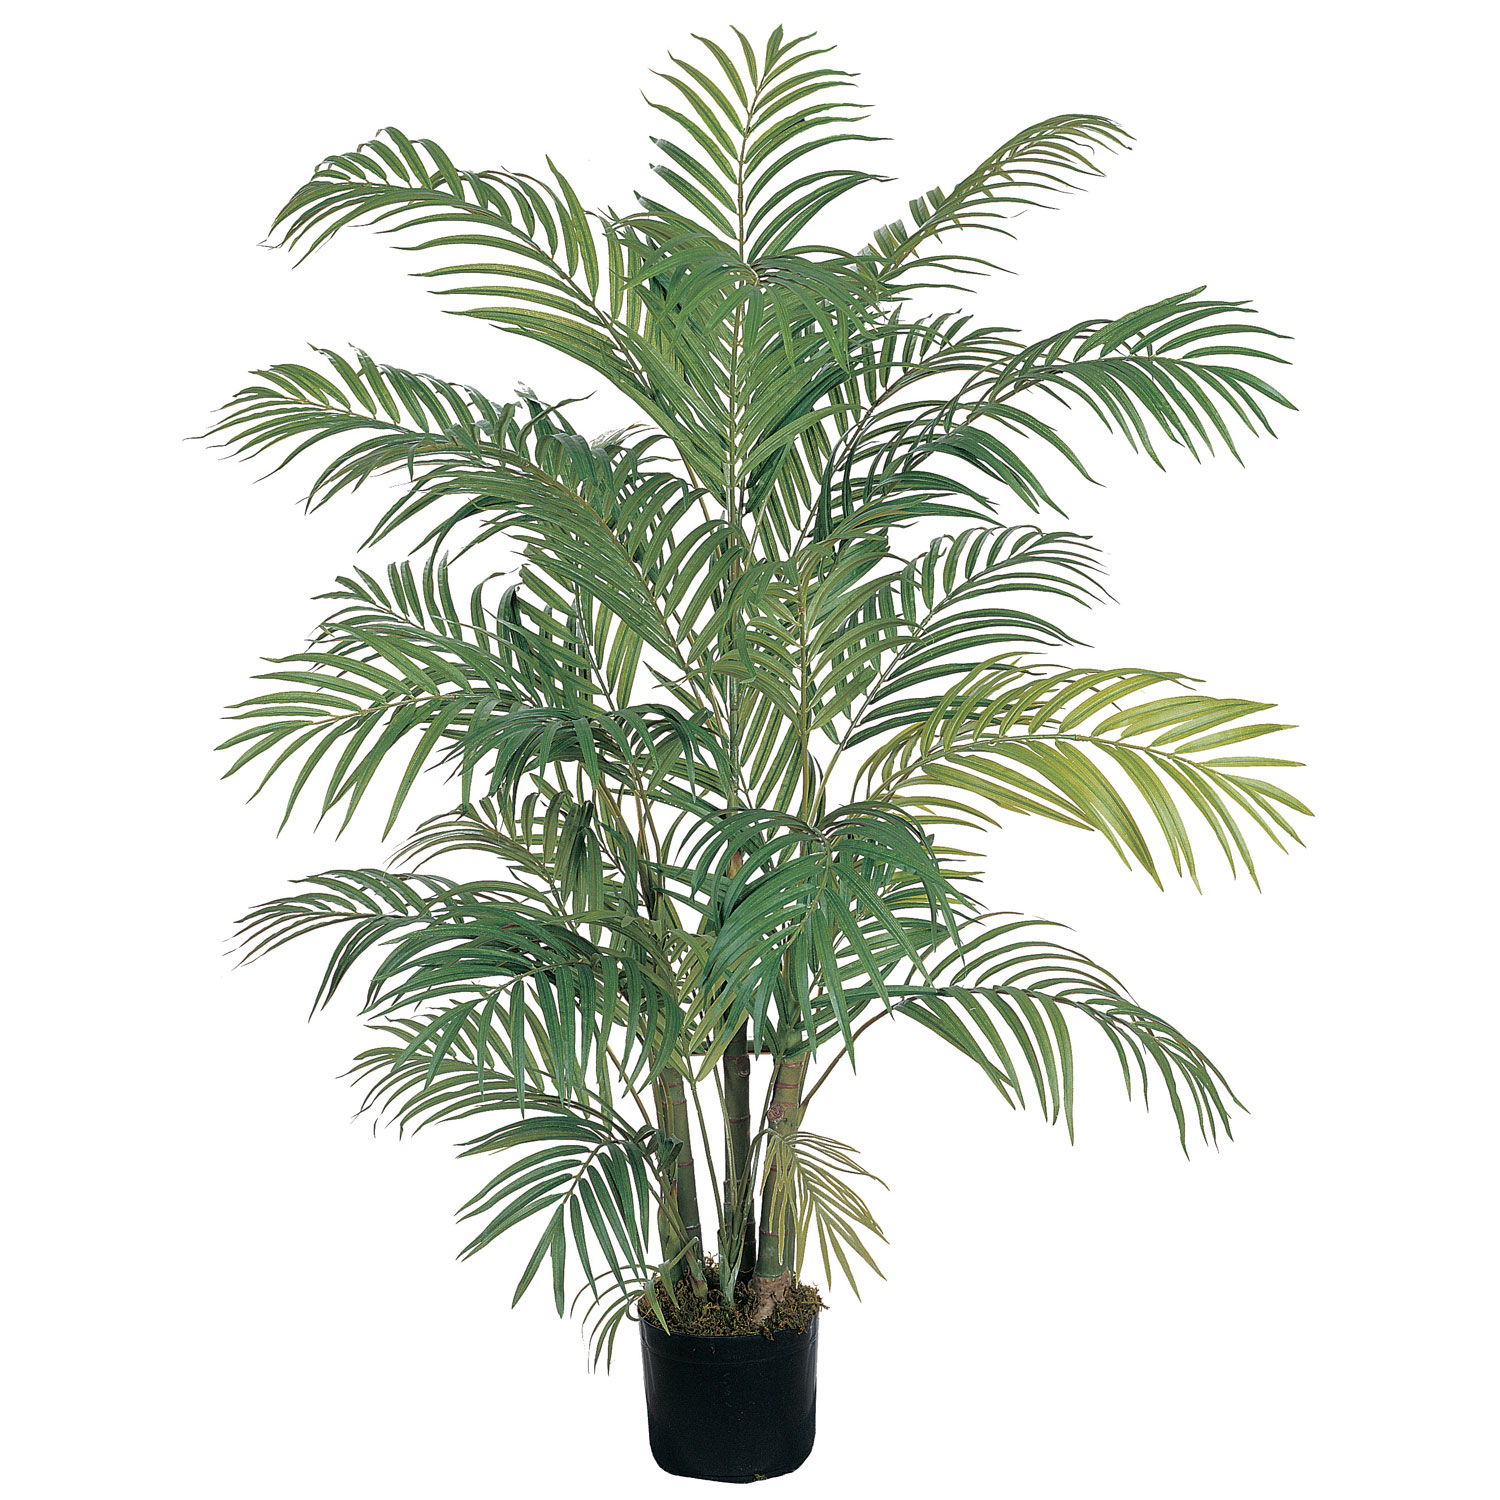 4 foot areca palm tree potted 5001 closeup image dhlflorist Gallery